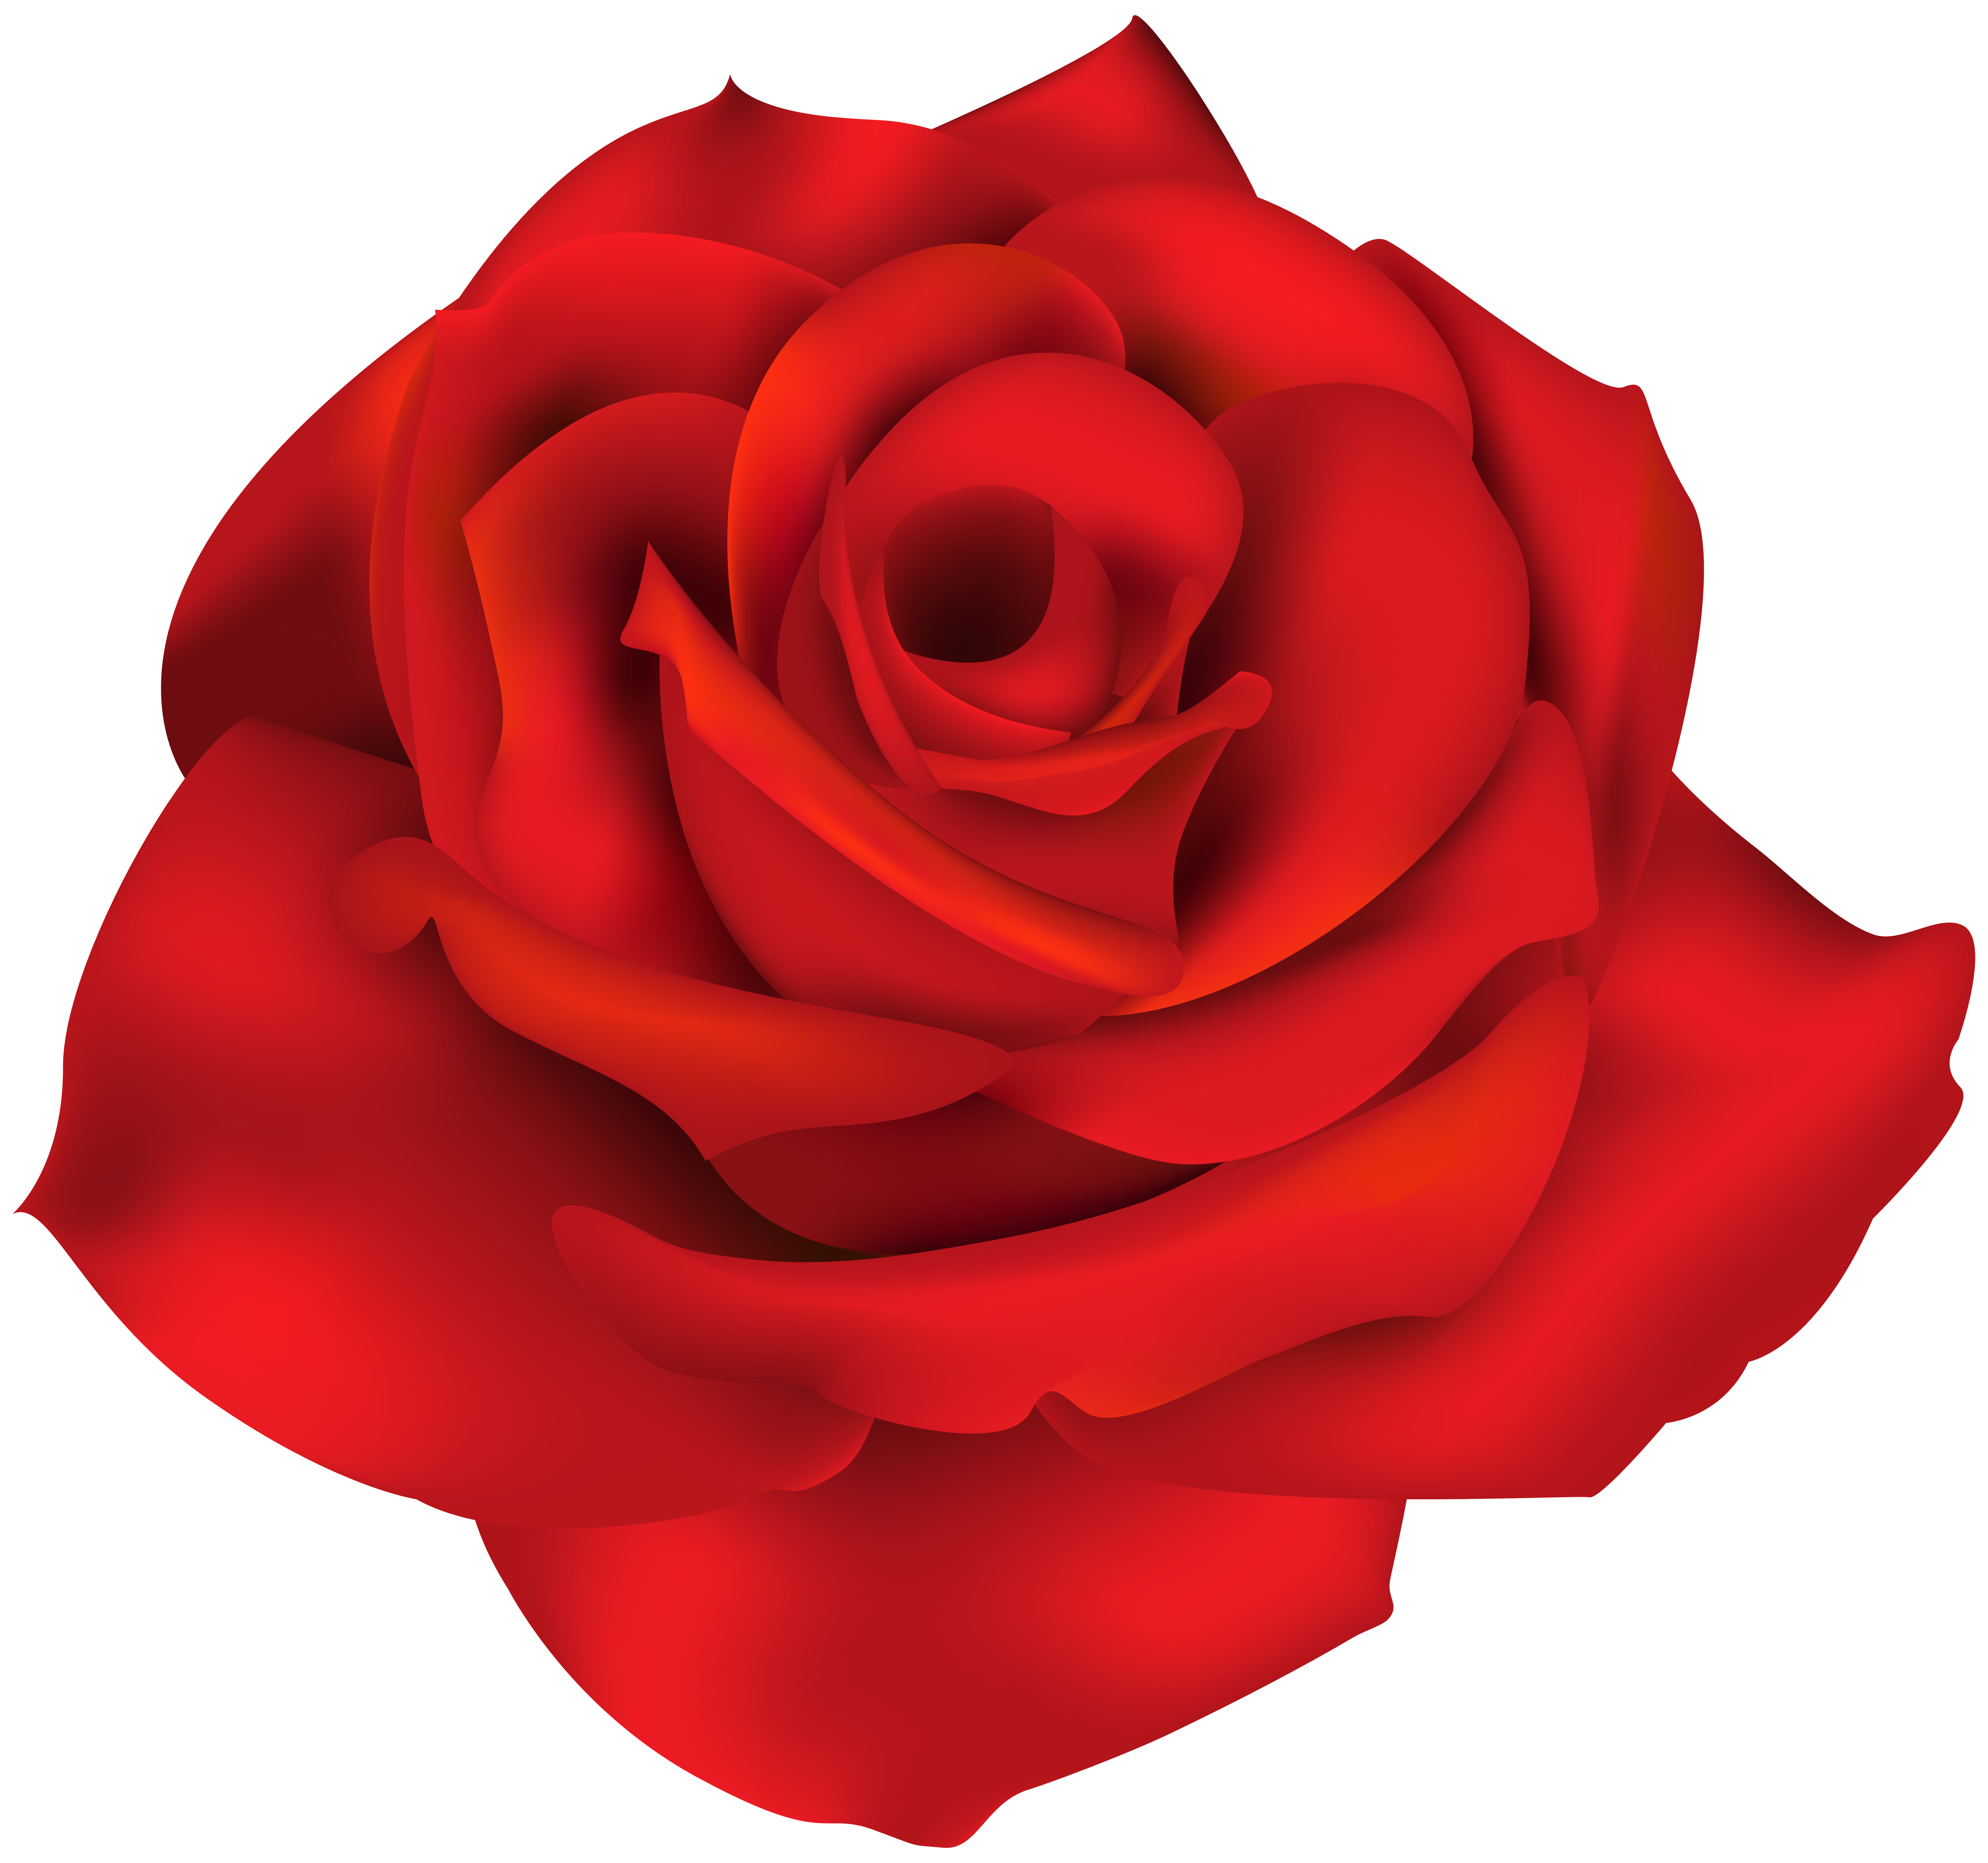 Rose clipart single. Red png clip art